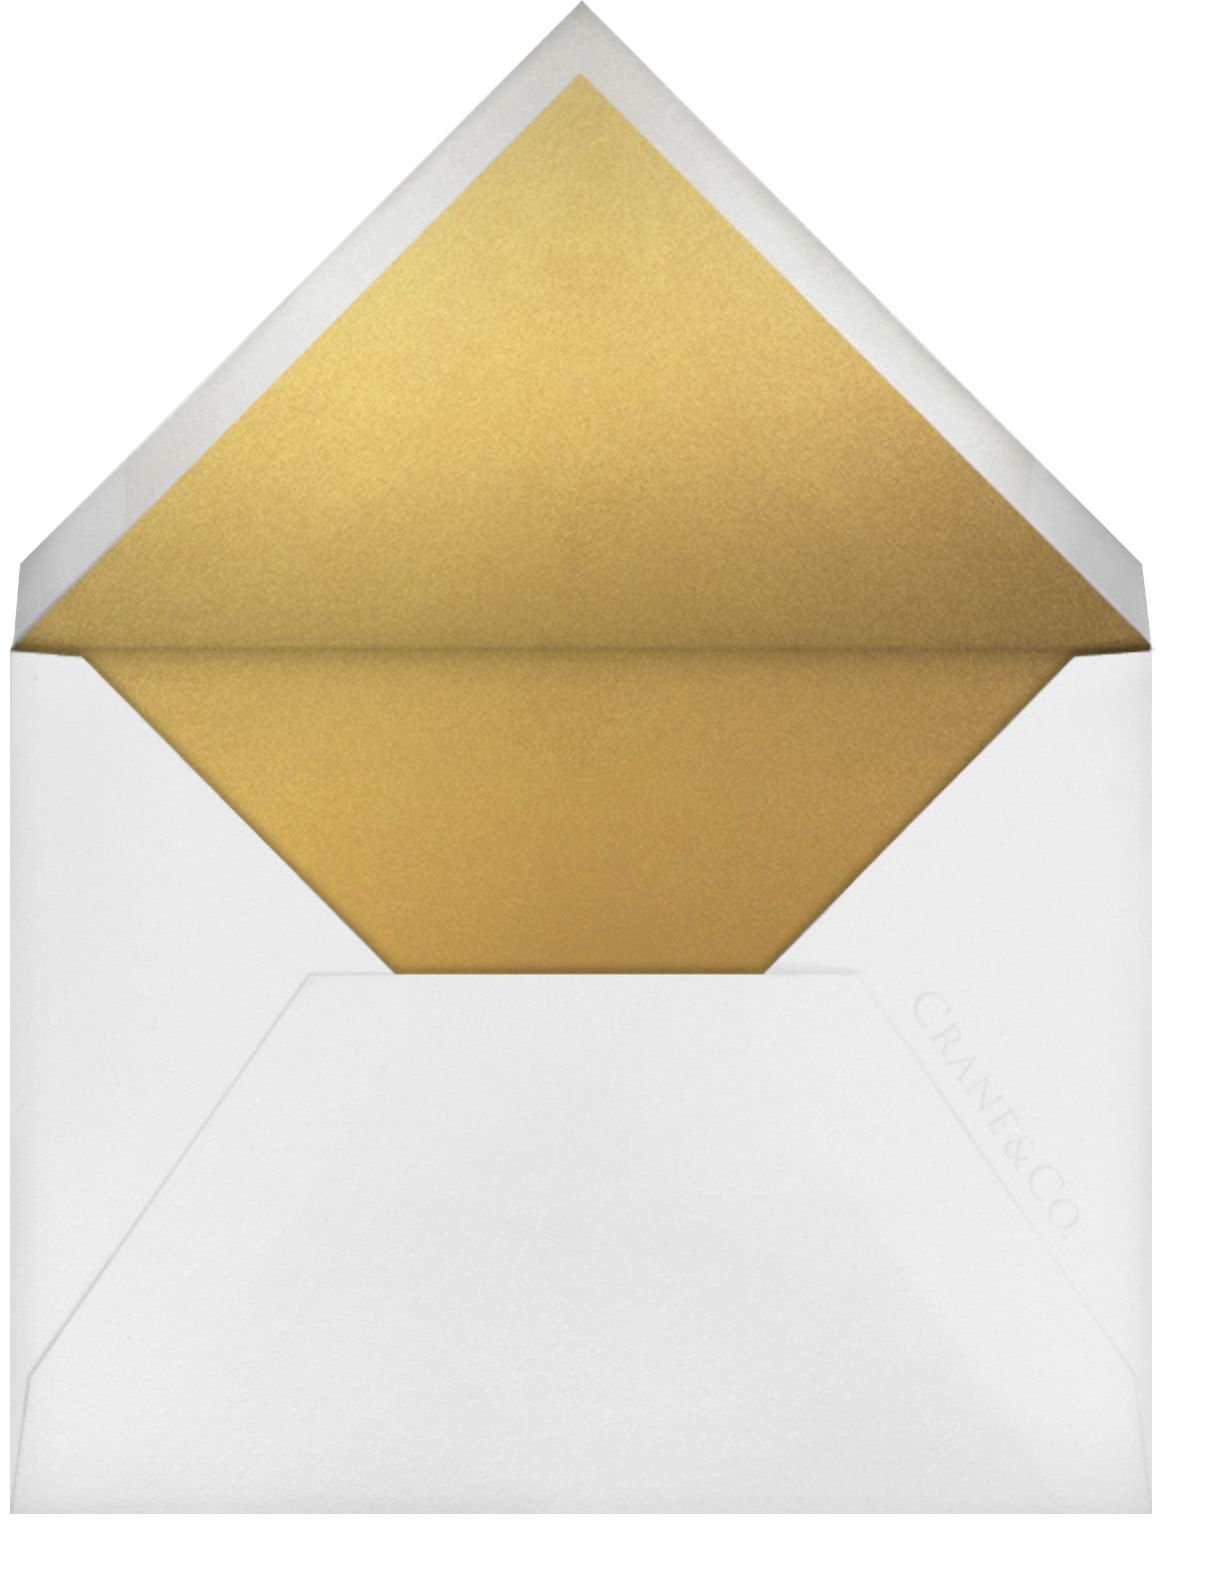 Daphne - Medium Gold - Crane & Co. - All - envelope back